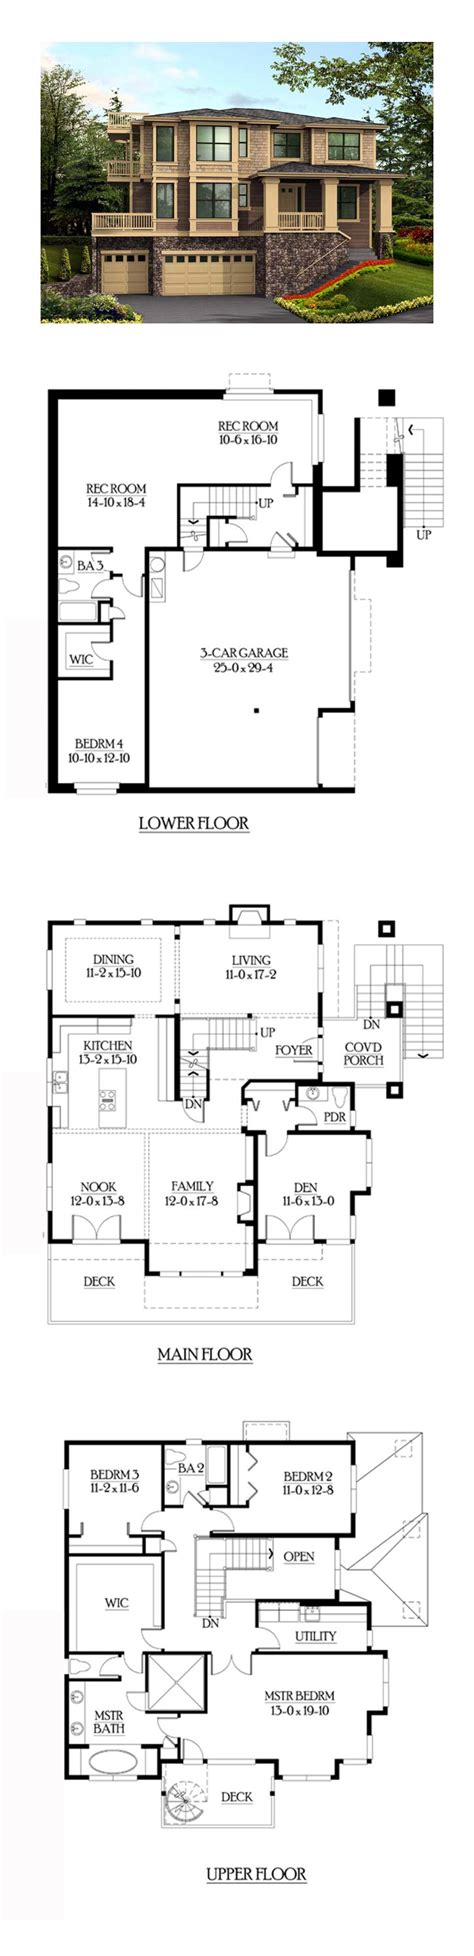 house plans basement best 25 basement house plans ideas on basement floor plans house layouts and